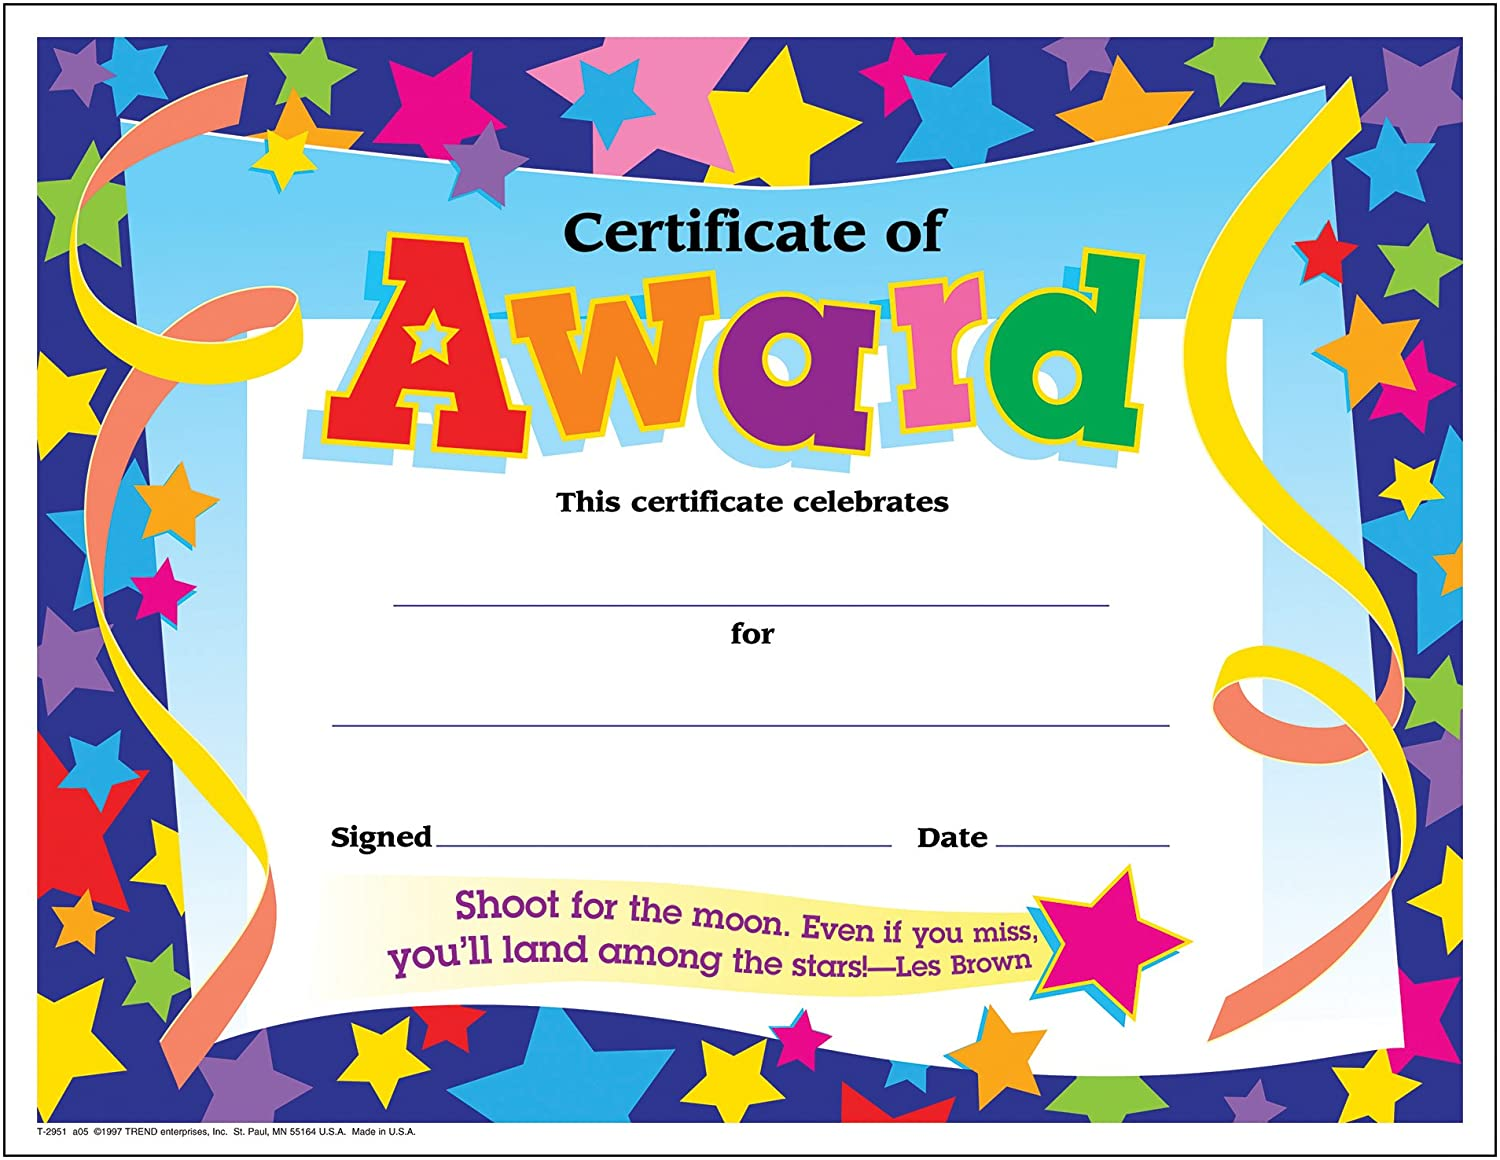 Trend Enterprises Certificate of Award Colorful Classics Certificates, 8.5 x 11 Inches - 30 Piece, (T-2951)